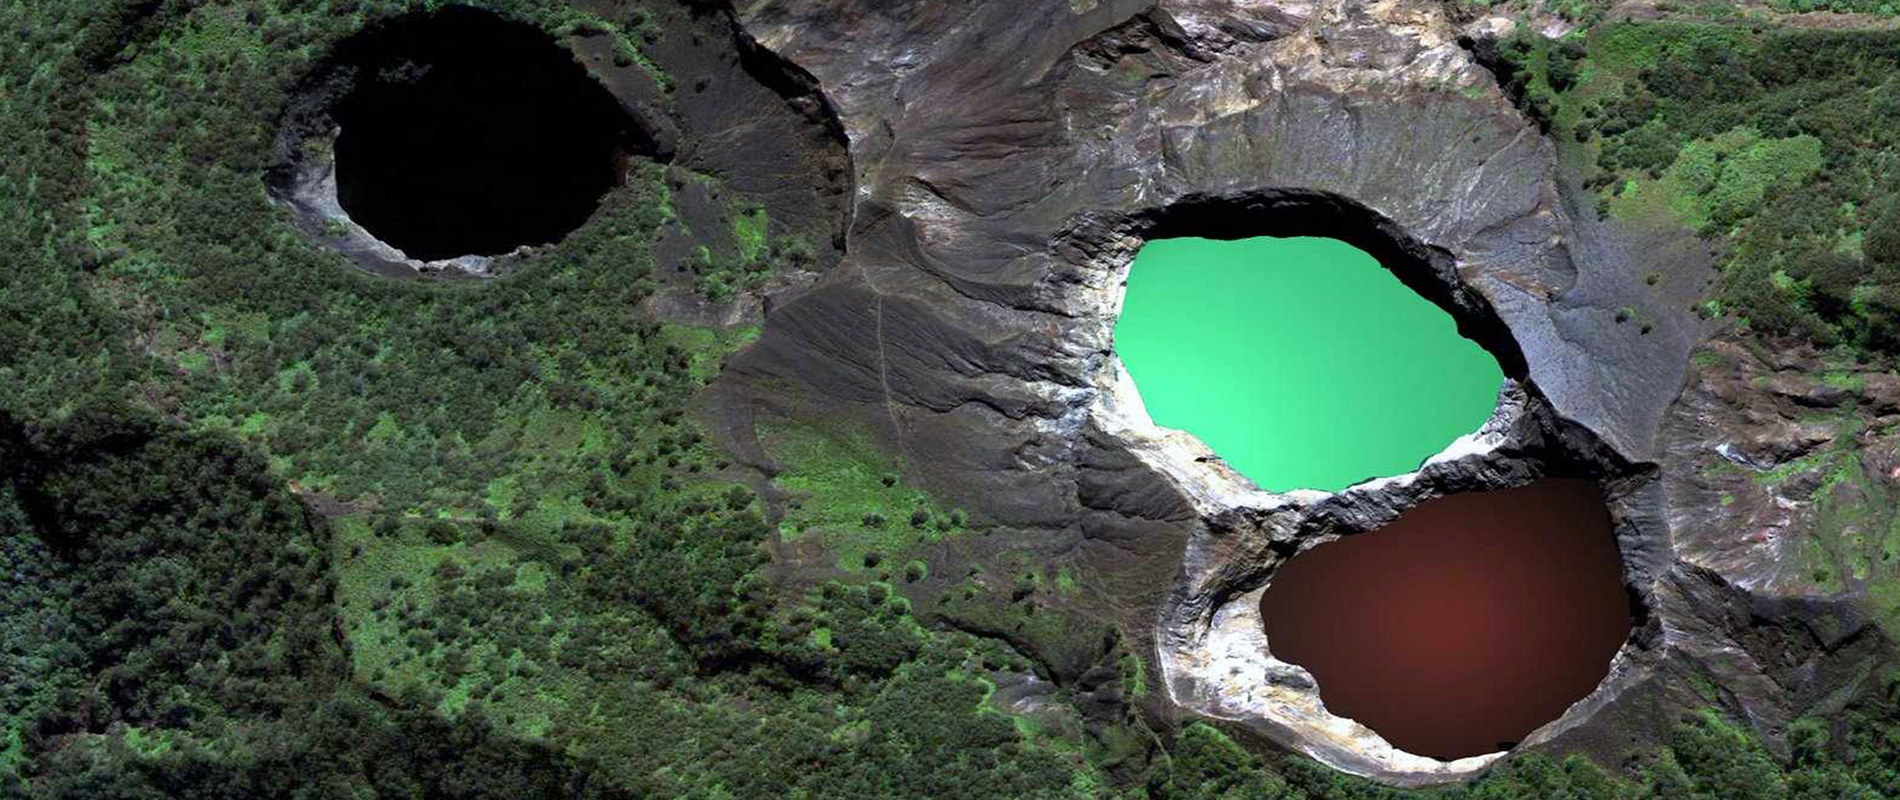 Kelimutu, The Volcano Whose Lake Waters Changes Color